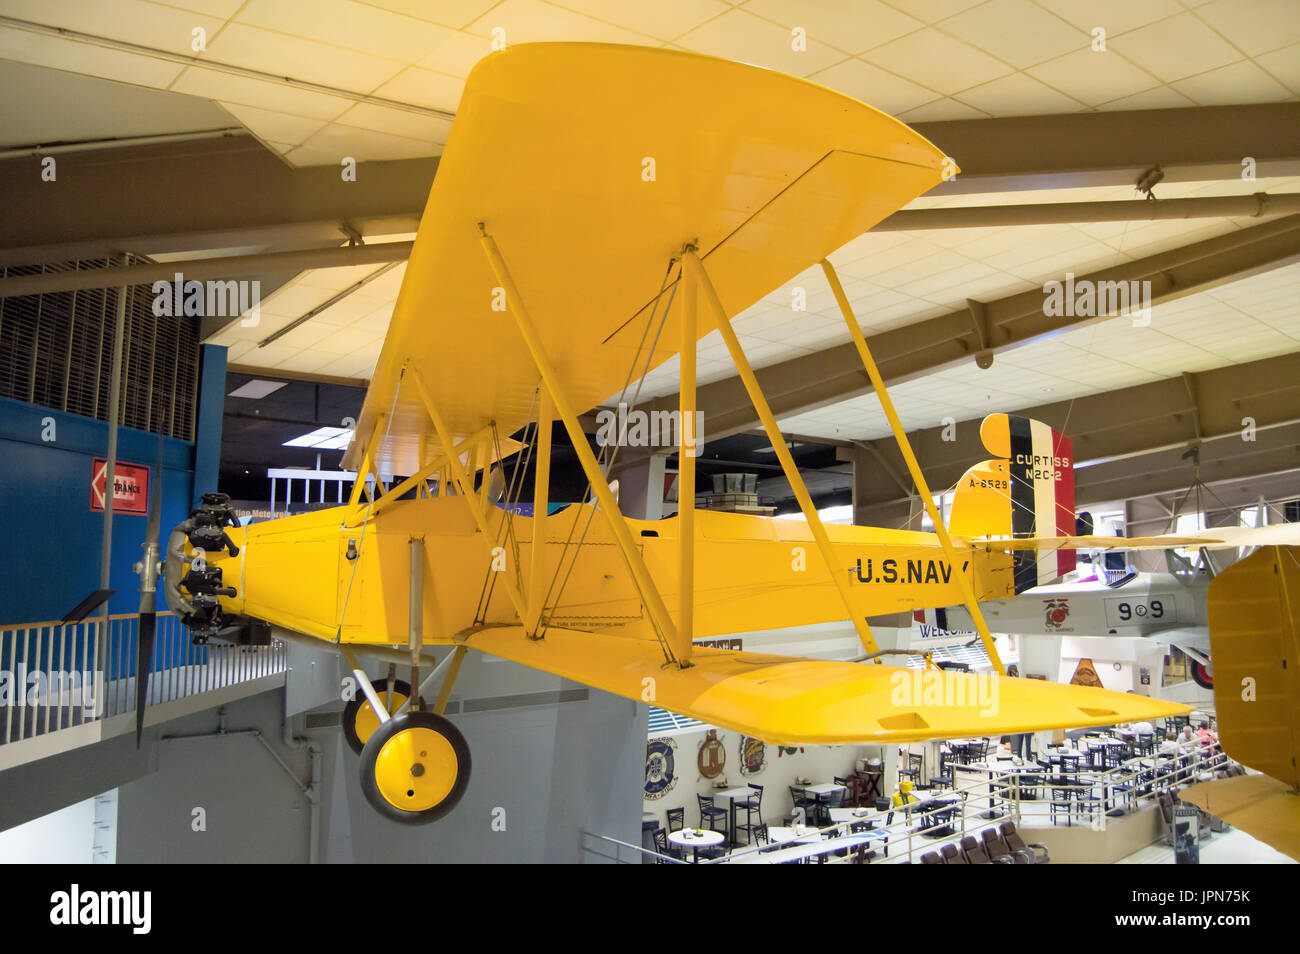 A yellow bi-plane on display at the national museum of naval aviation. - Stock Image